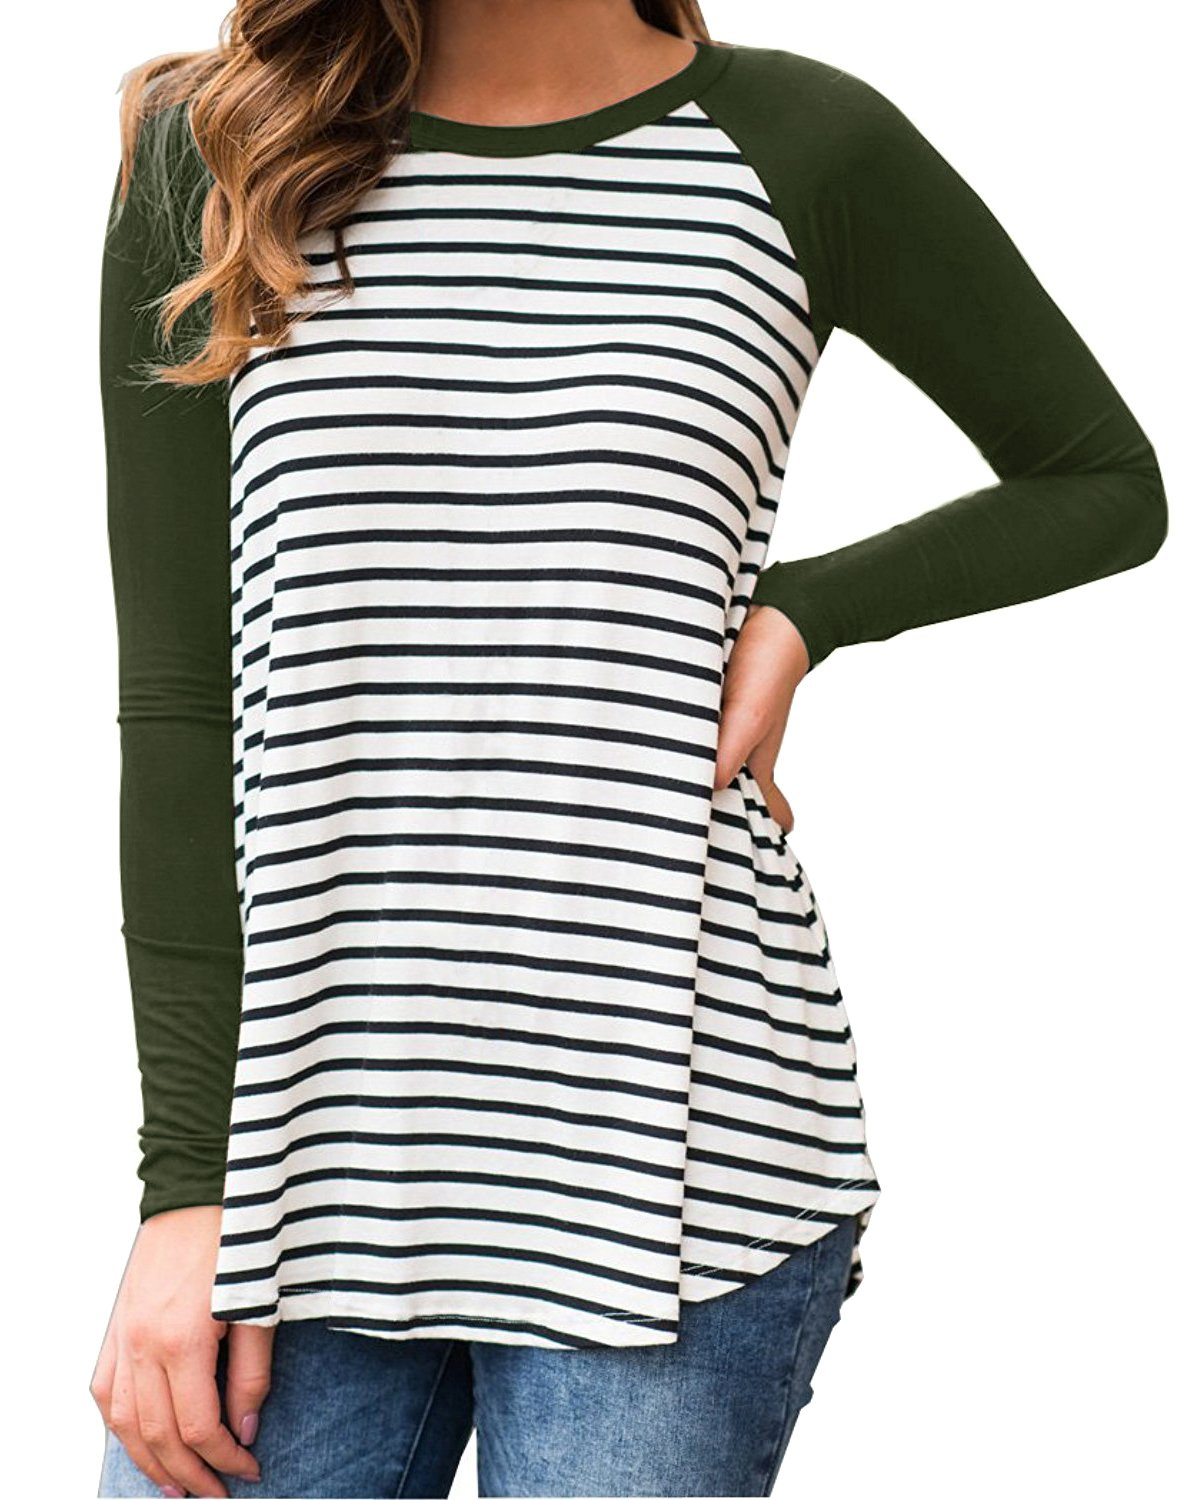 Cnfio Womens Blouses Striped Shirts Long Sleeve Round Neck Patchwork Casual Tops Army Green XL by Cnfio (Image #2)